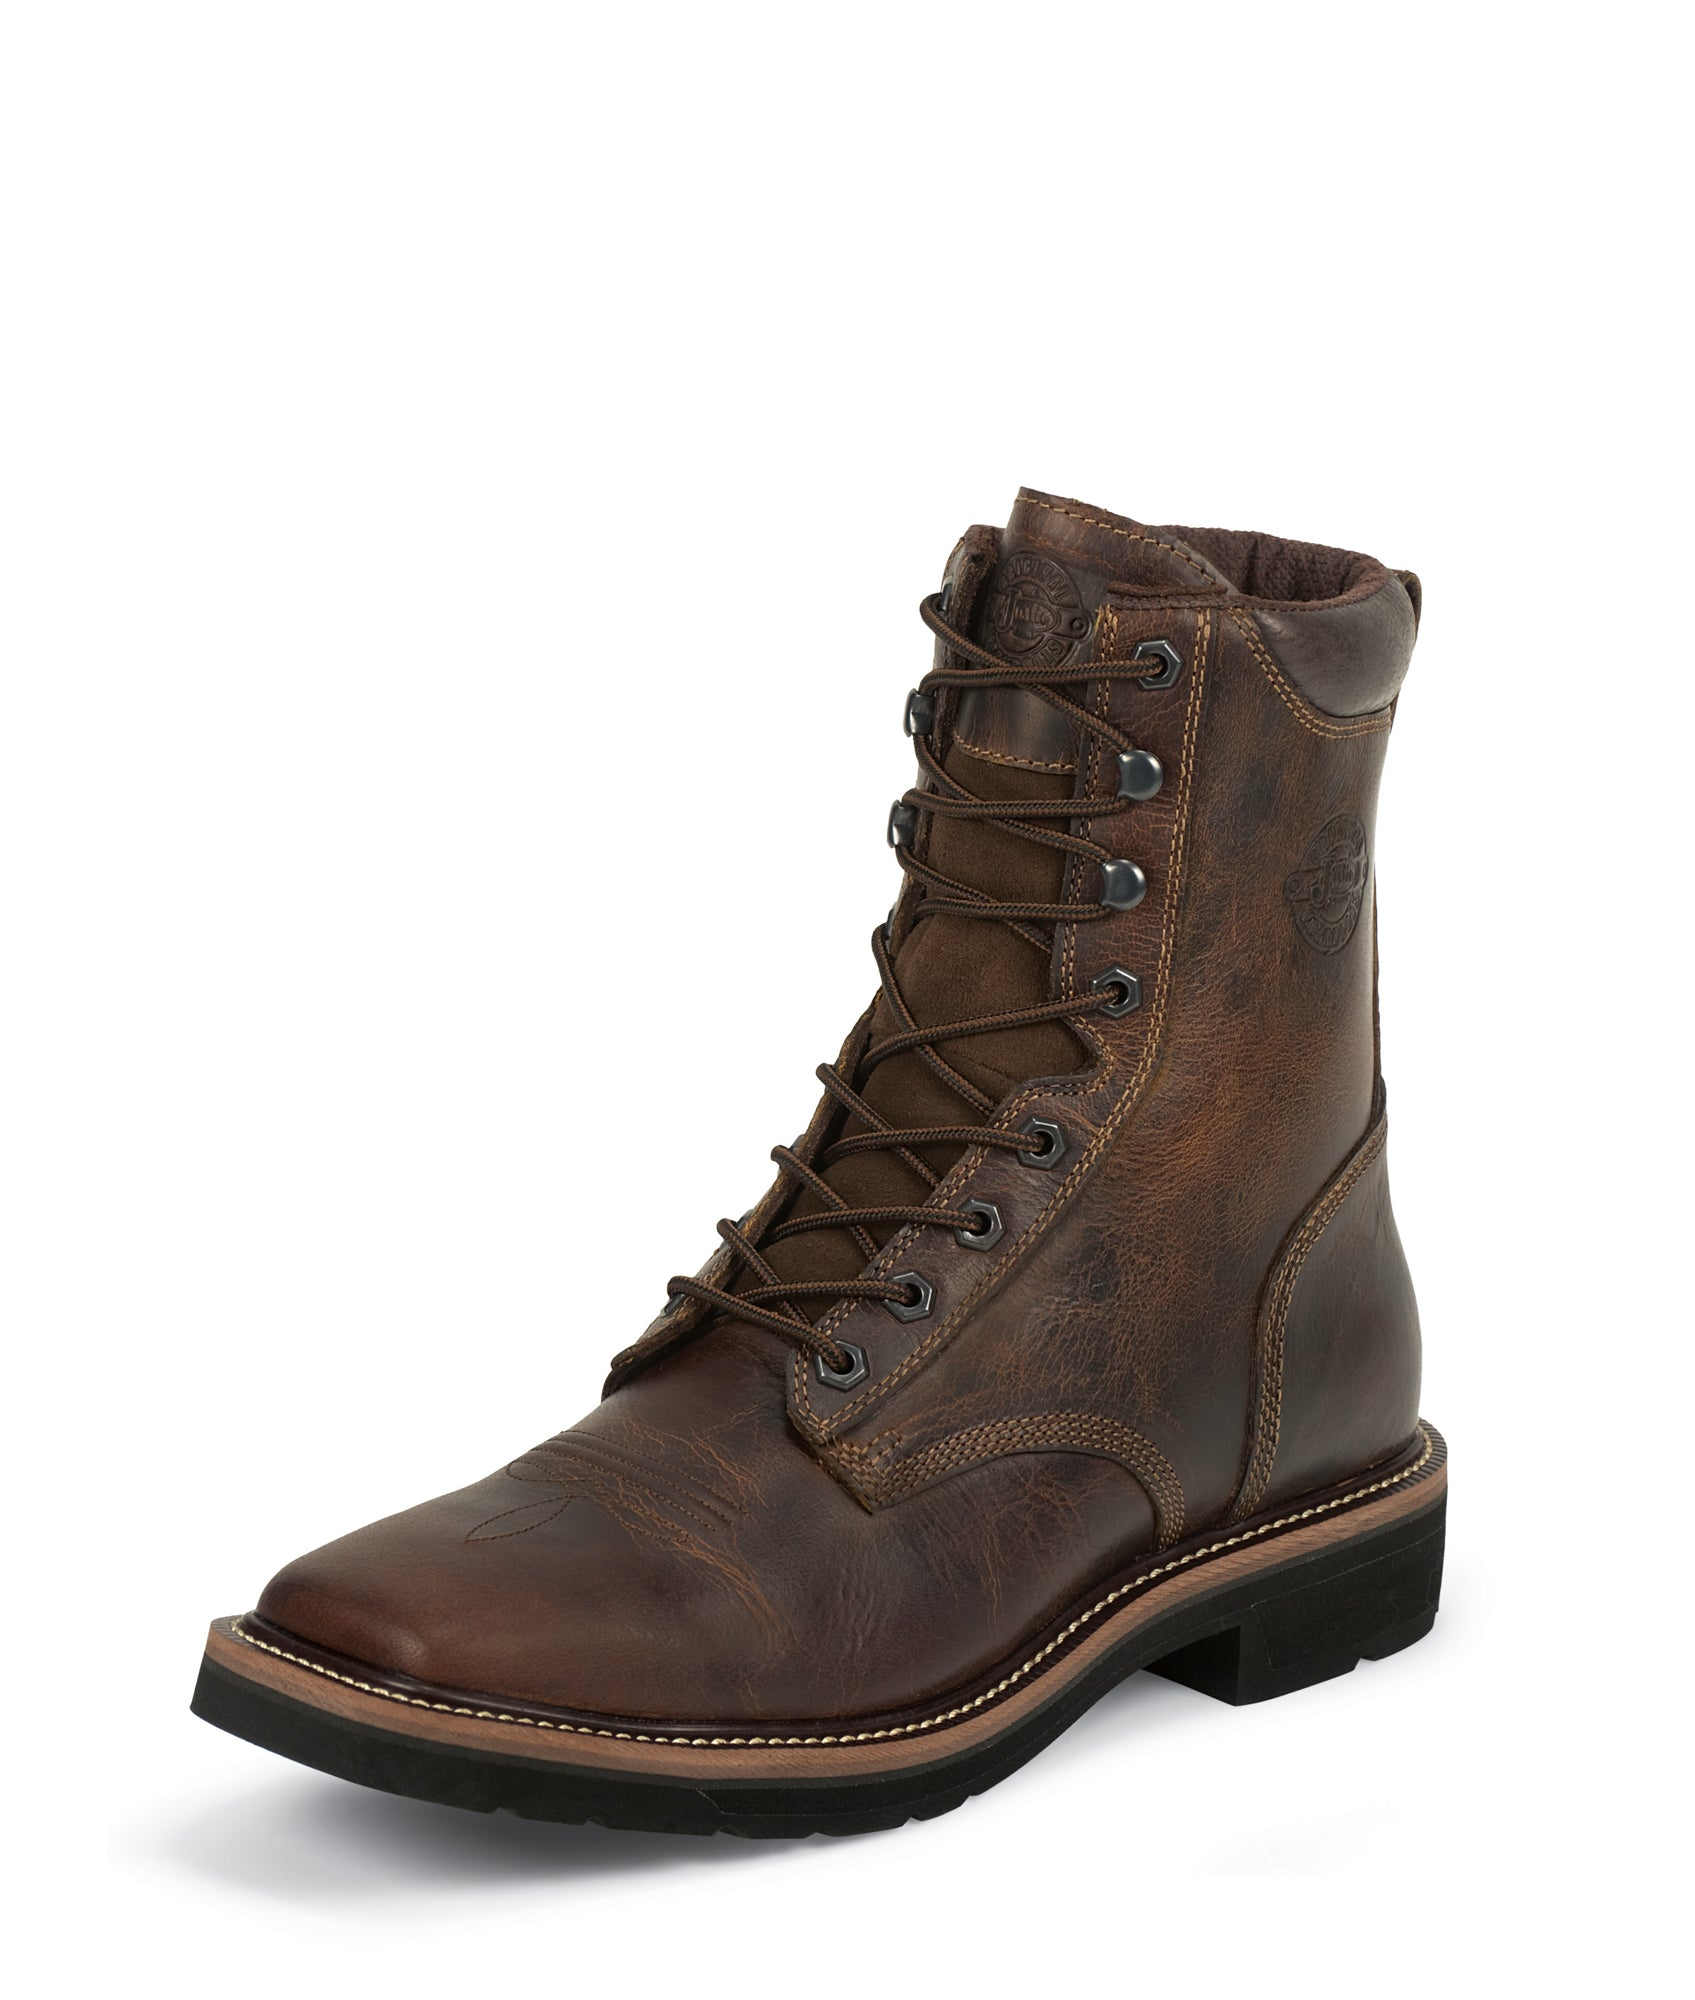 062584b3ba2 Justin Mens Tan Leather Work Boots Stampede Lace-Up Steel Toe